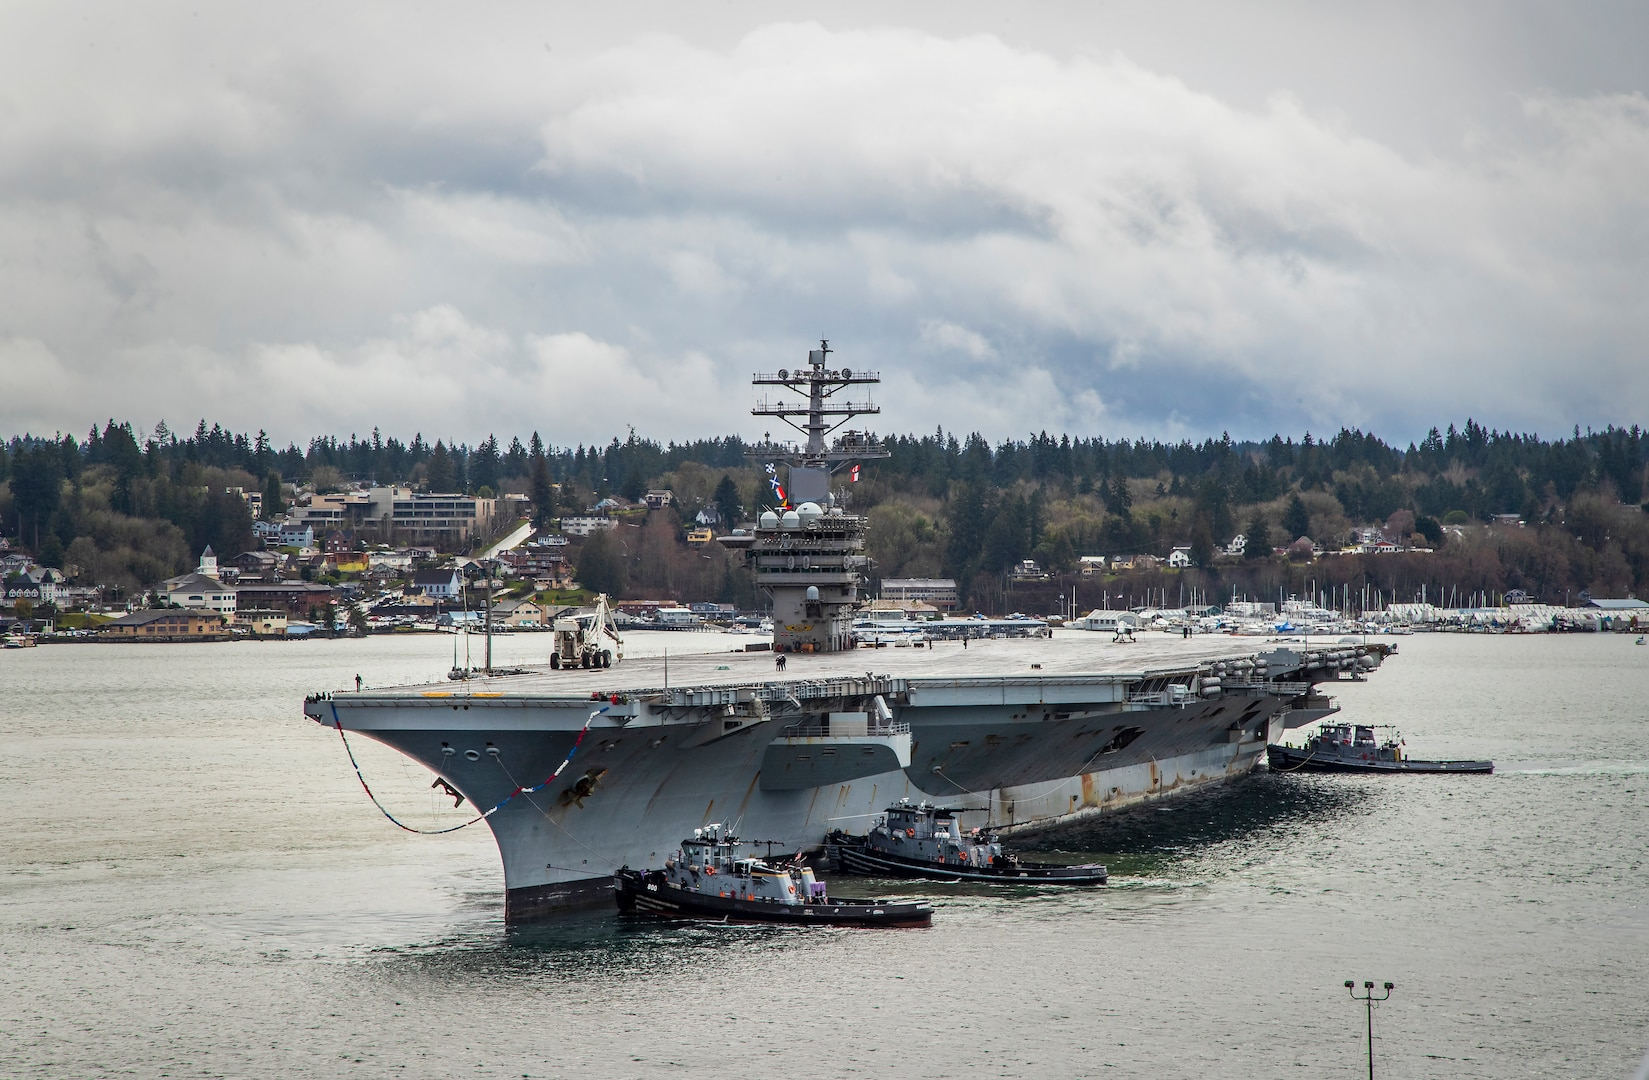 USS Nimitz (CVN 68) arrives at Naval Base Kitsap-Bremerton March 7, 2021. The ship's arrival completed a nearly 11-month deployment to U.S. 3rd, 5th and 7th Fleets, including participation in Operations Freedom's Sentinel, Inherent Resolve and Octave Quartz. The Nimitz Project Team reached the halfway point of its Planned Incremental Availability Aug. 11, 2021. (PSNS & IMF Photo by Wendy Hallmark)